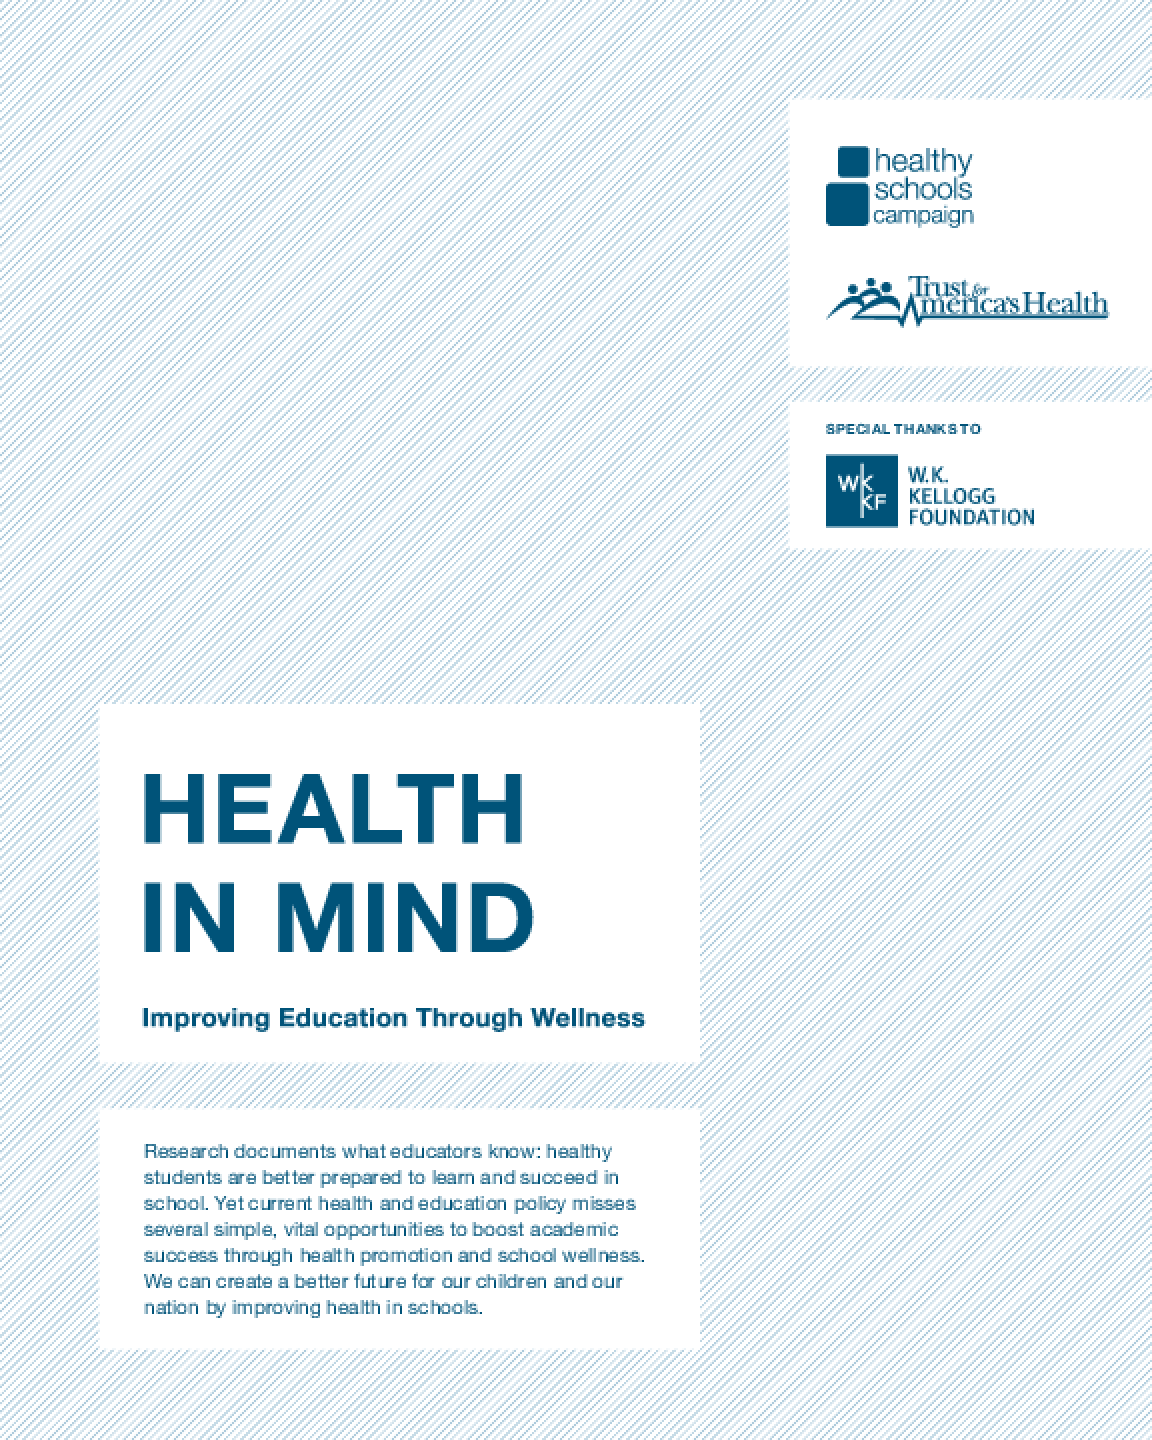 Health in Mind: Improving Education Through Wellness